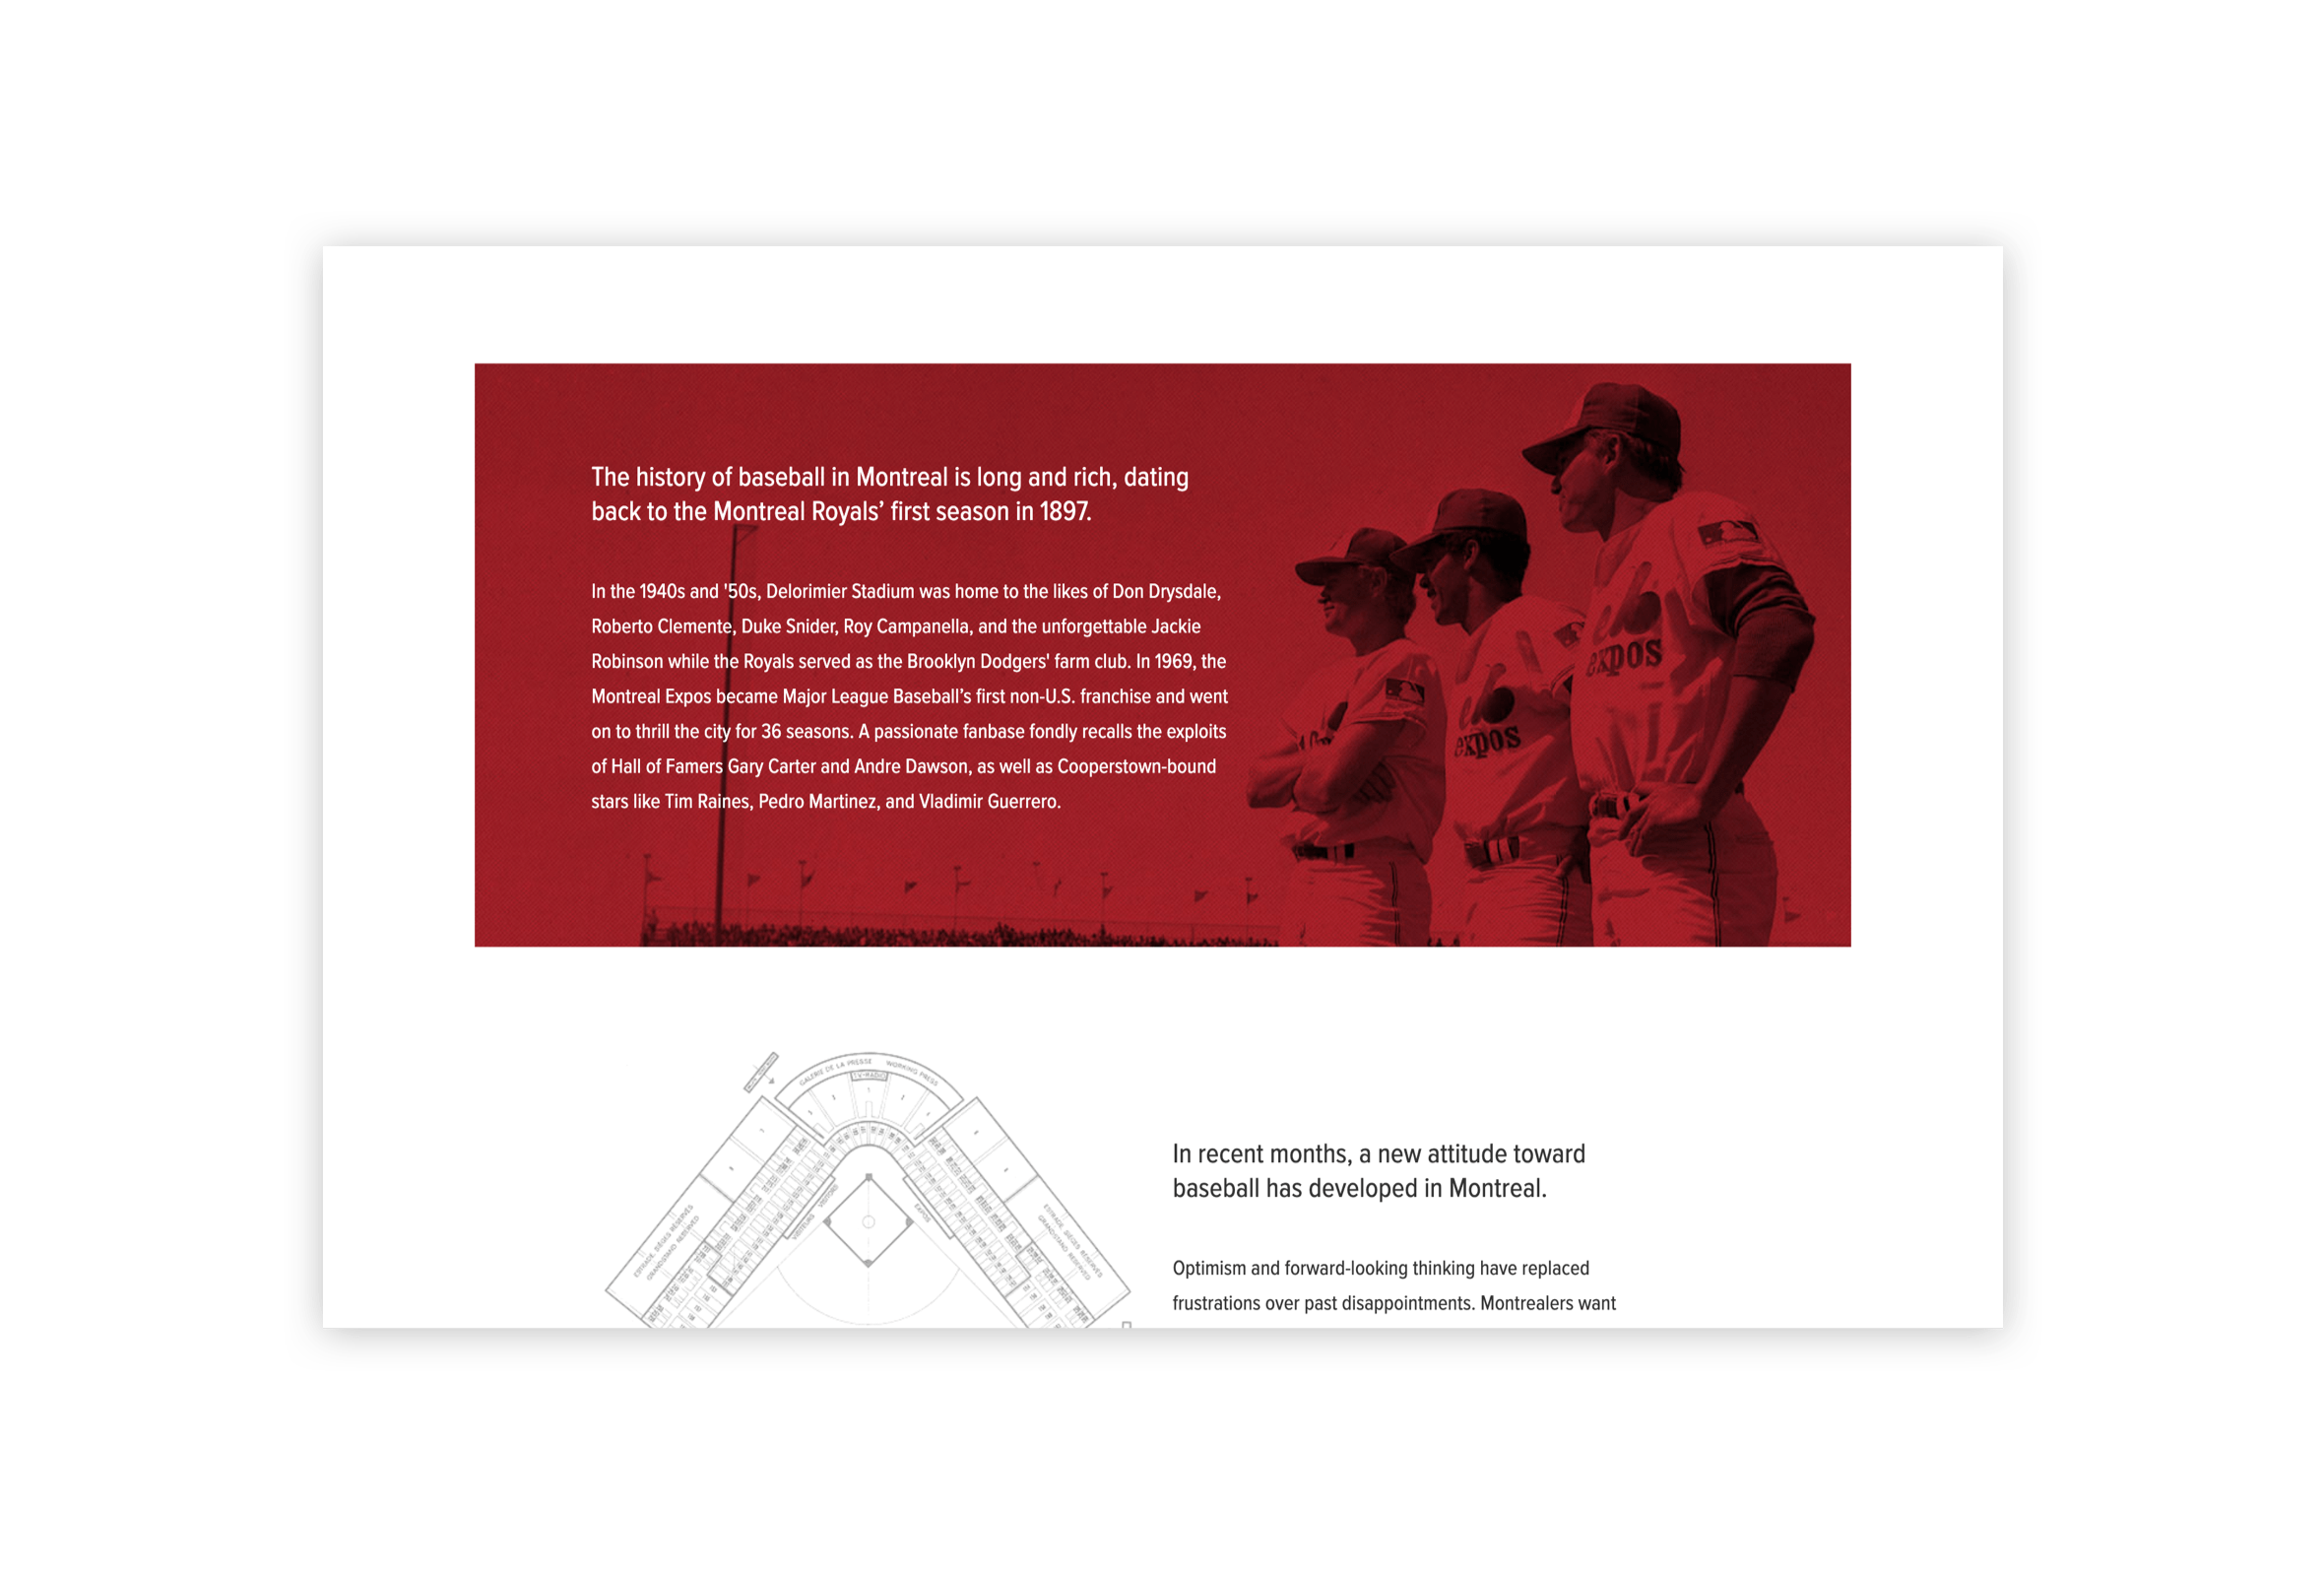 Desktop visual of the history of baseball in Montreal